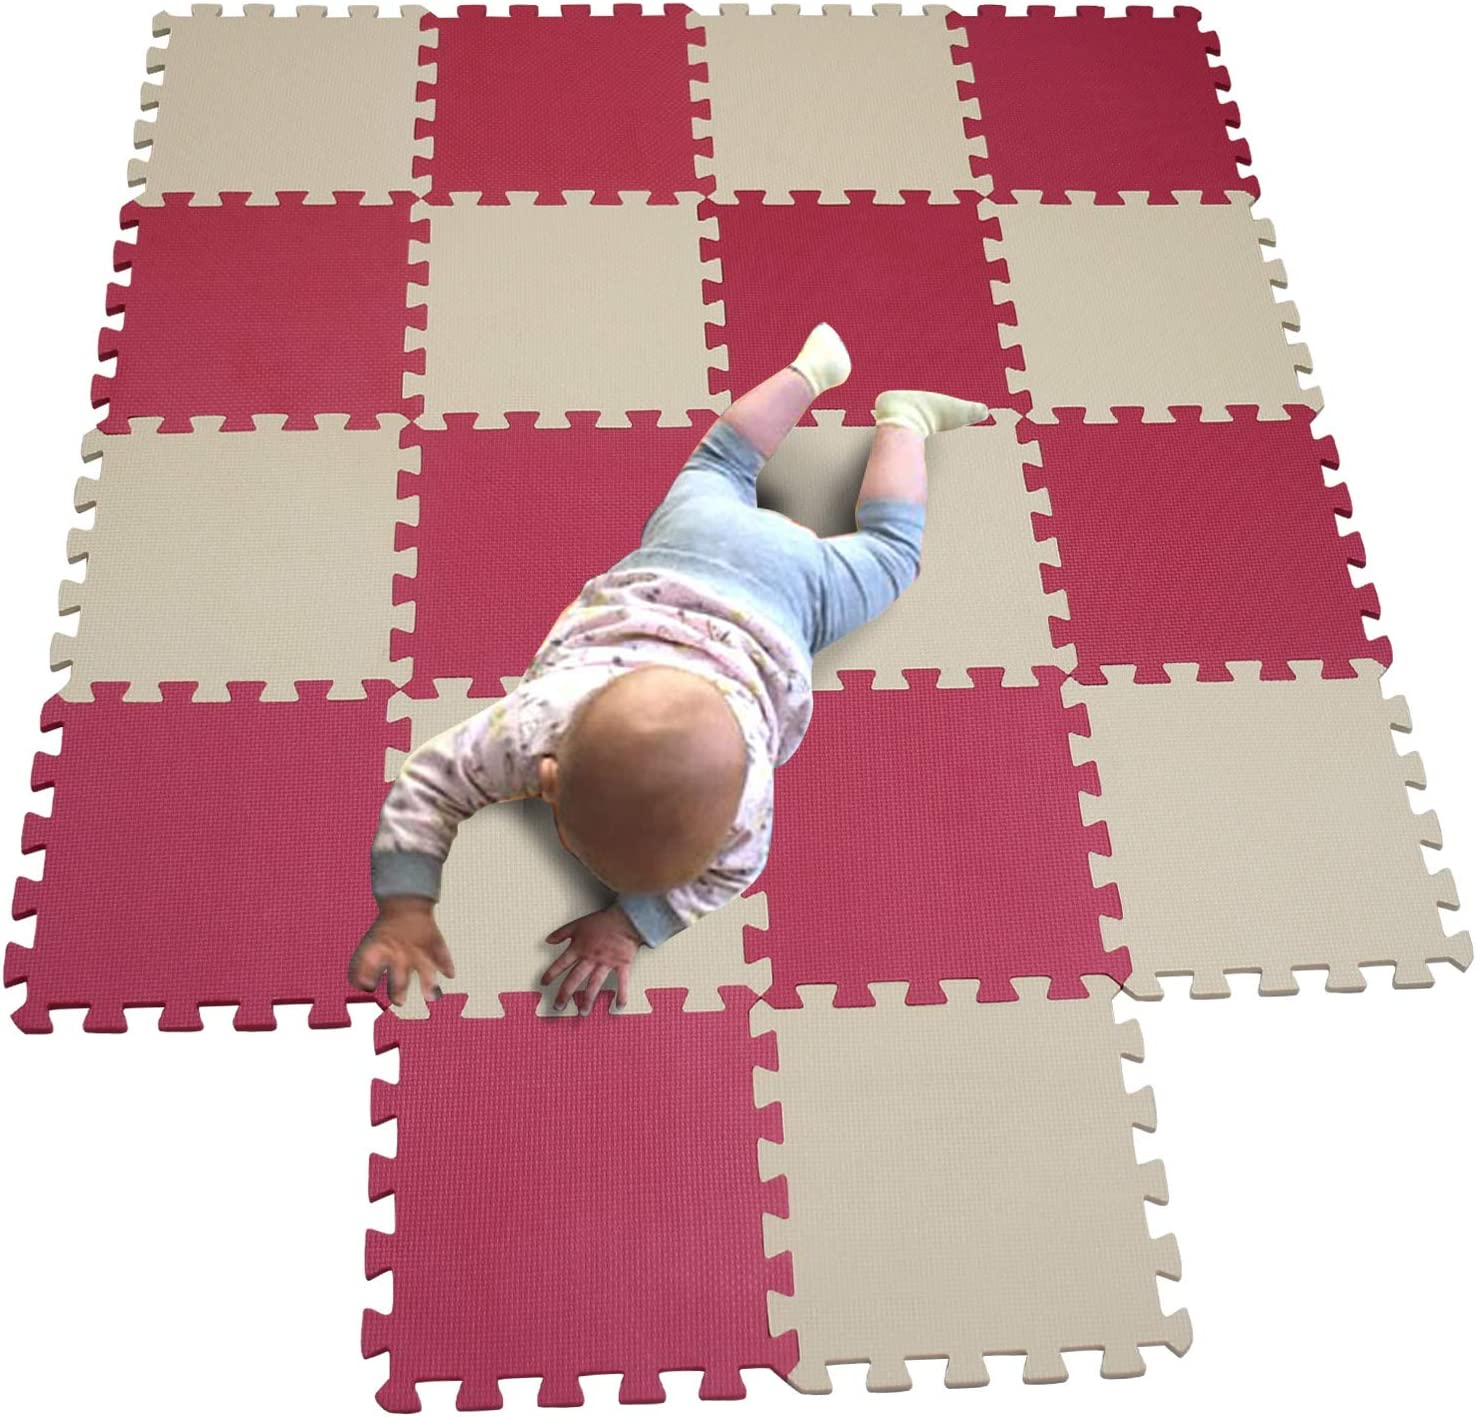 MQIAOHAM Direct sale of manufacturer Children Puzzle Max 87% OFF mat Play Squares Bab Tiles